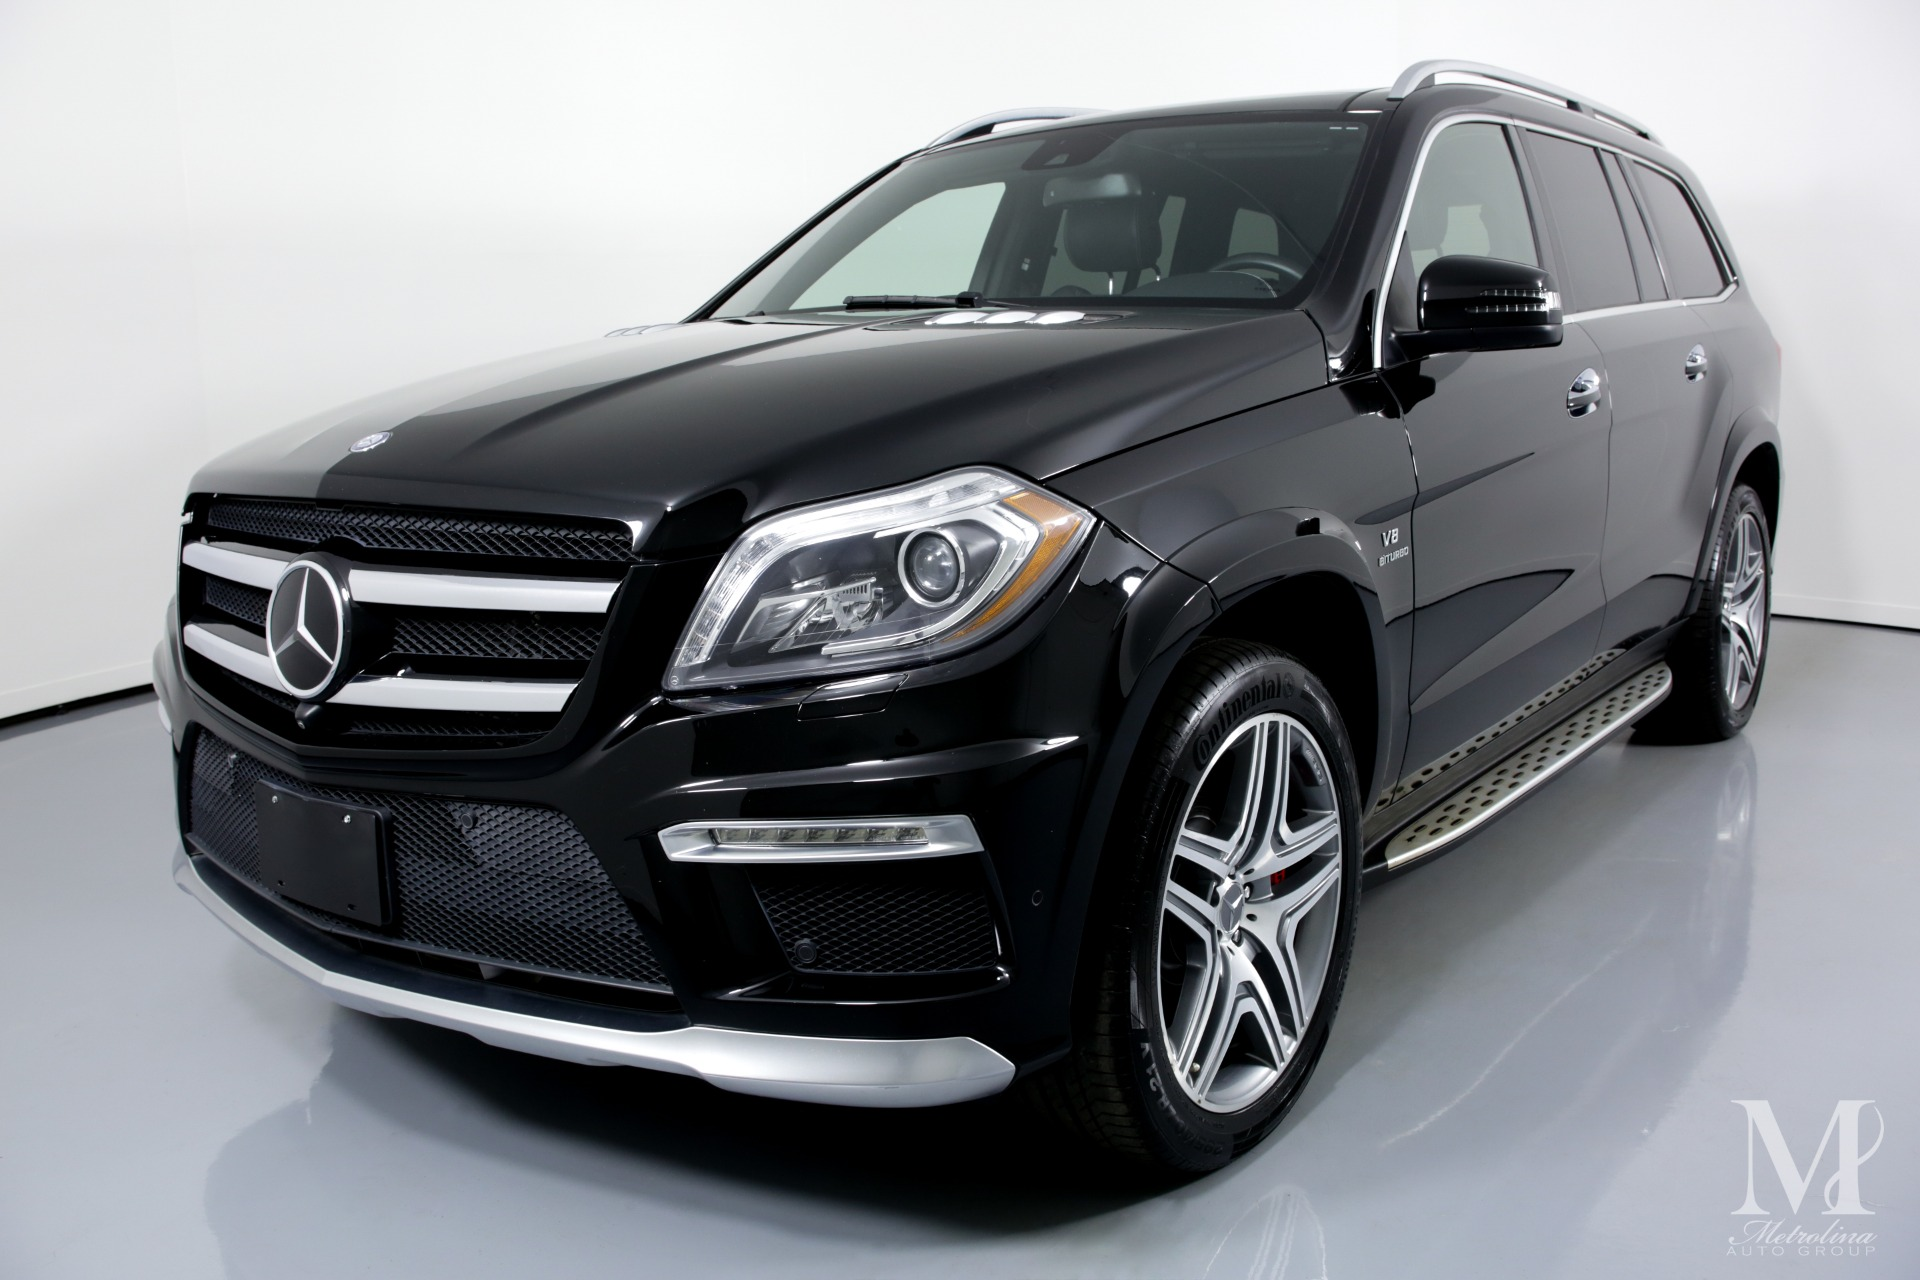 Used 2015 Mercedes-Benz GL-Class GL 63 AMG AWD 4MATIC 4dr SUV for sale $44,996 at Metrolina Auto Group in Charlotte NC 28217 - 4